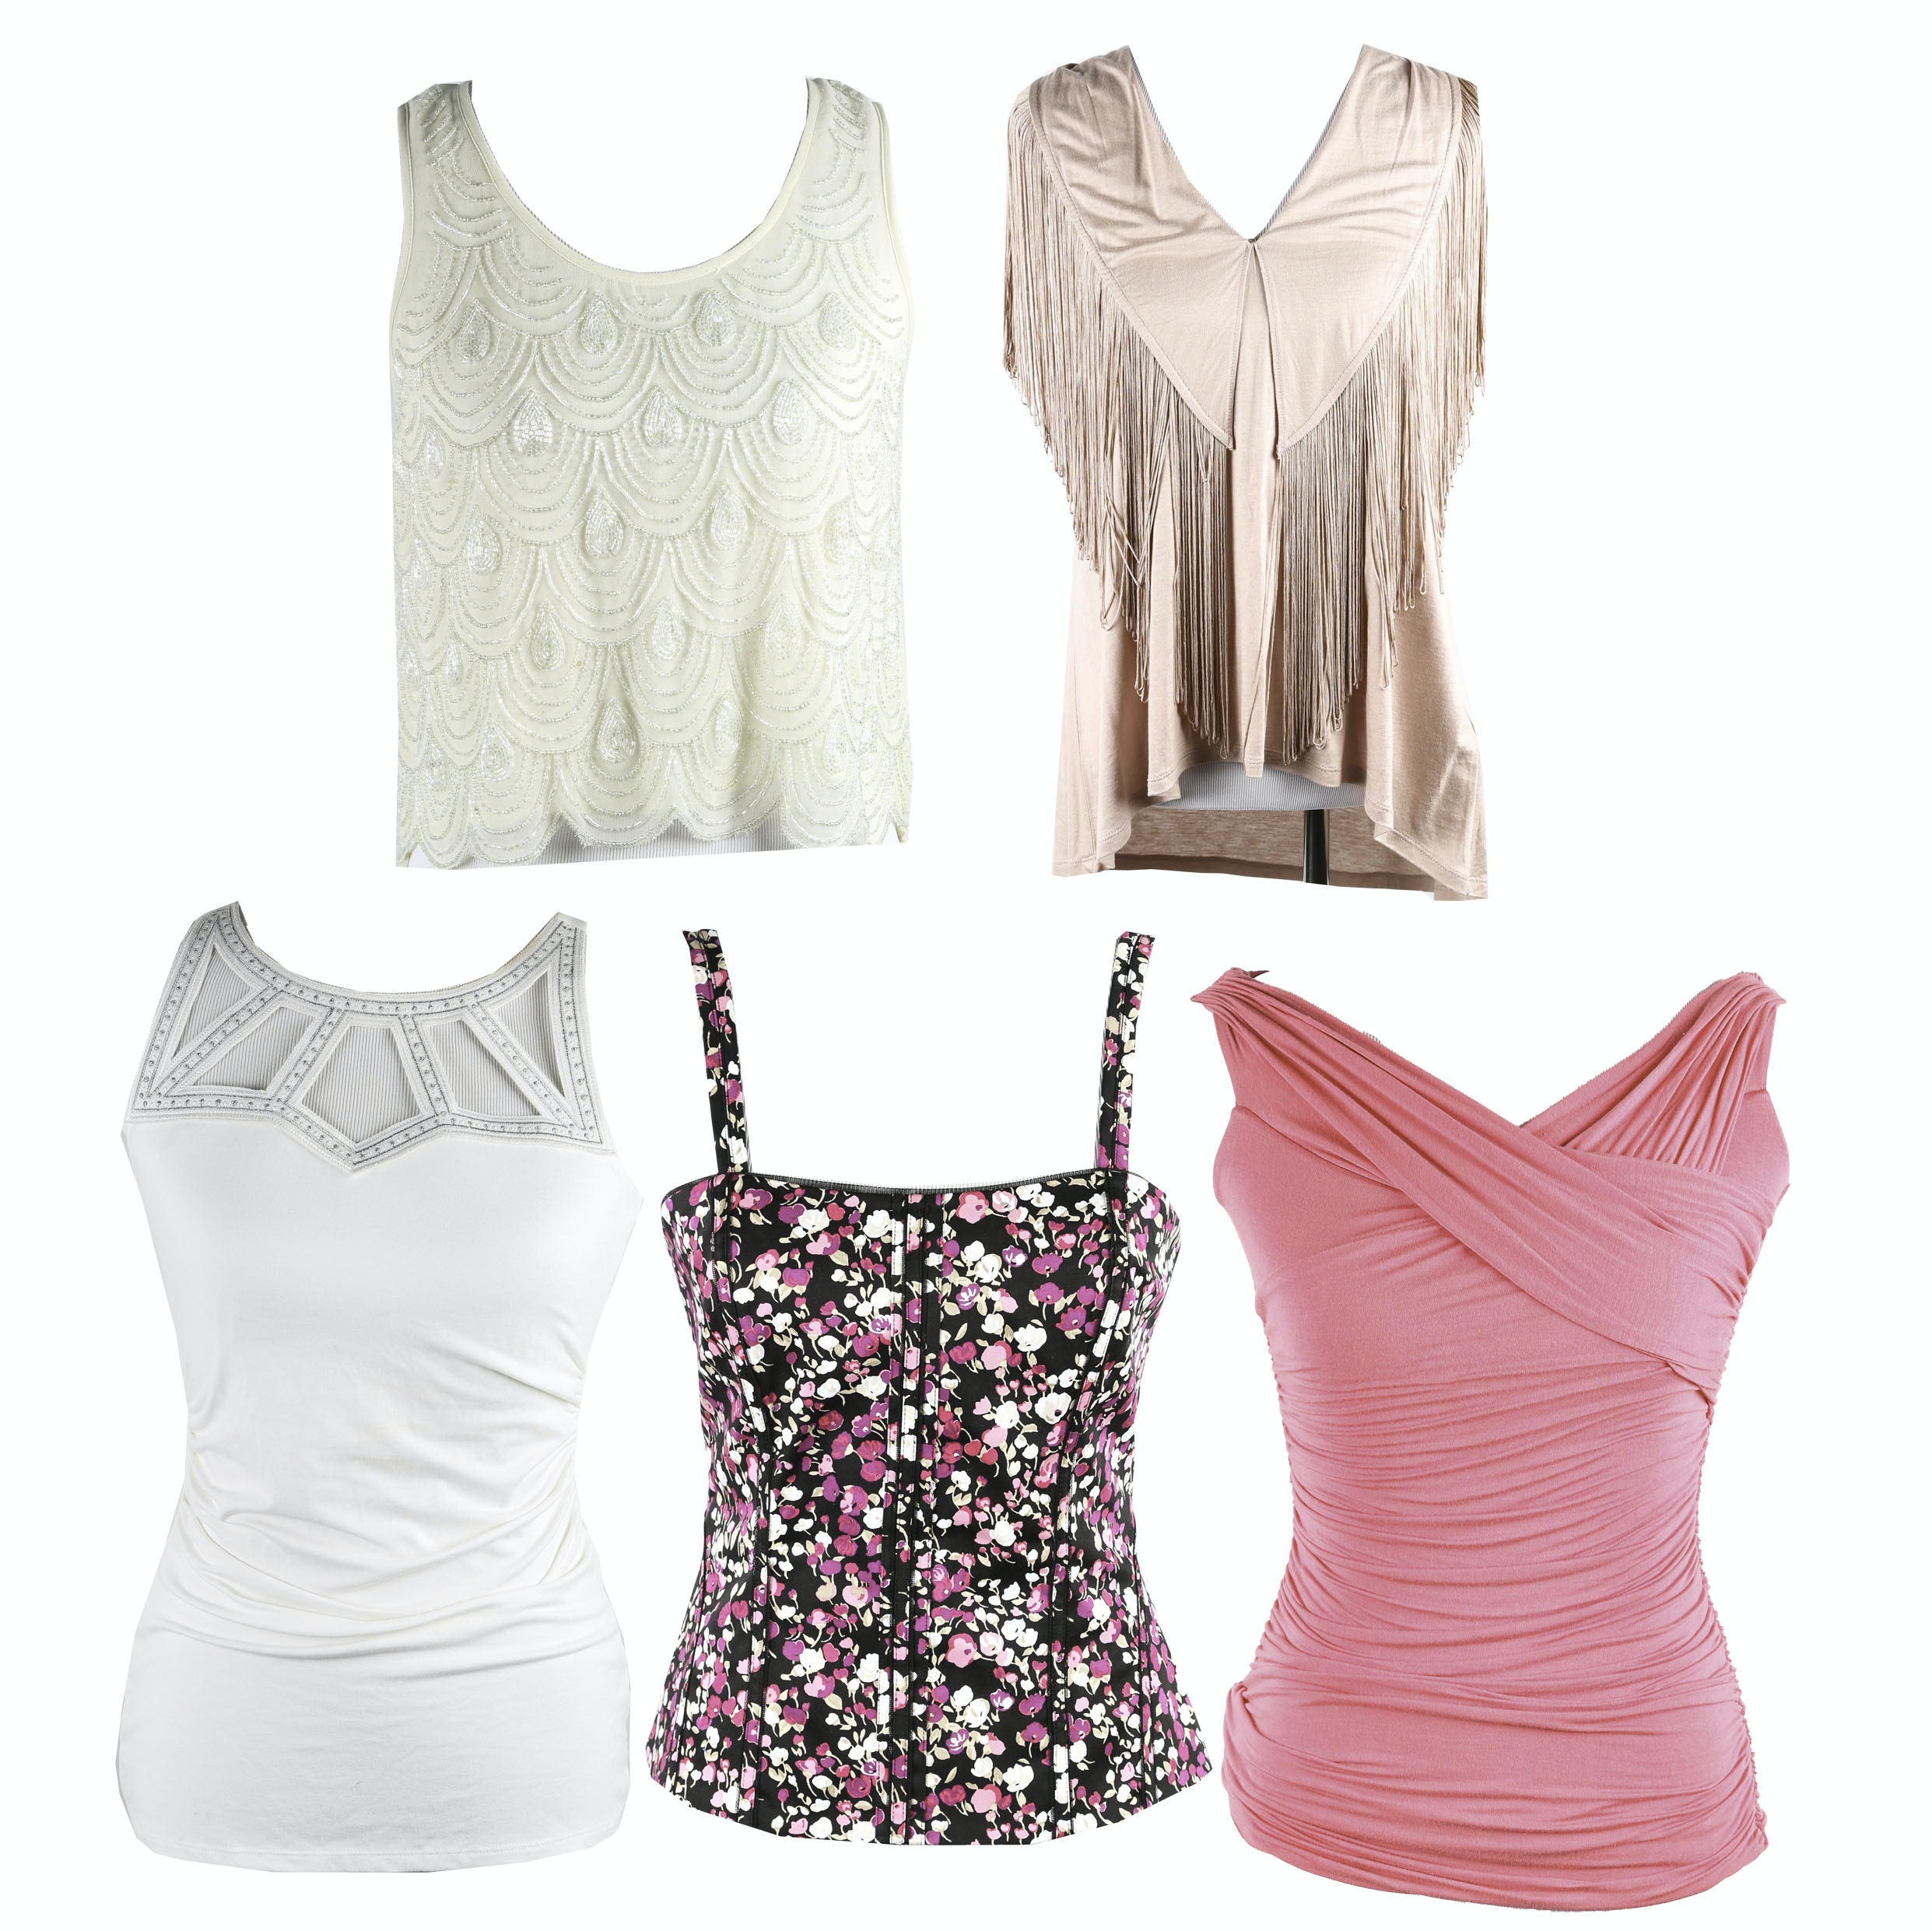 Collection of Women's Sleeveless Tops